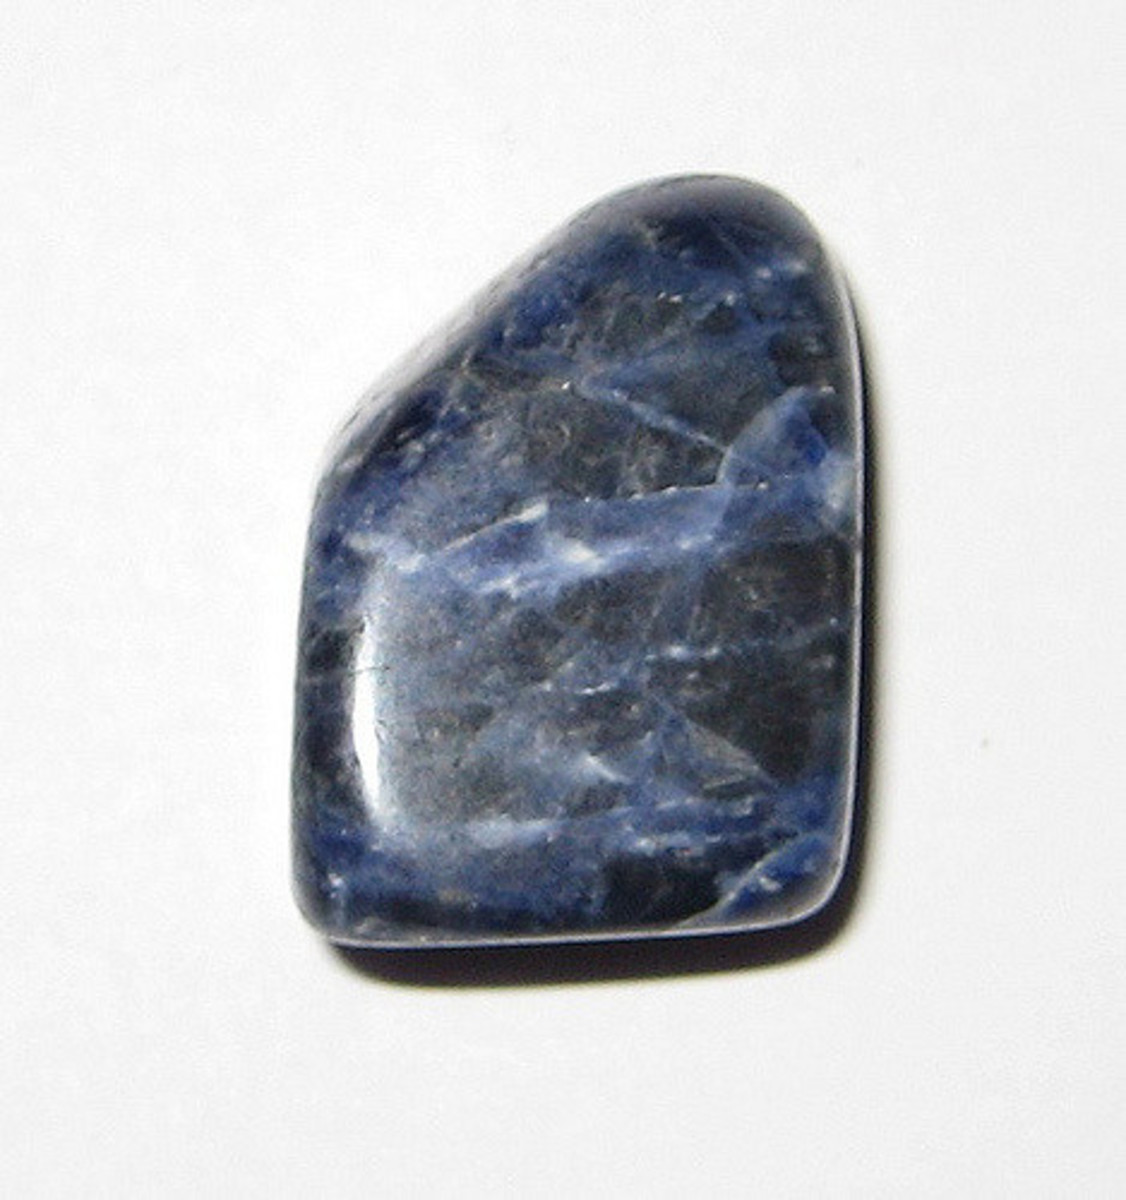 Sodalite can be used to enhance meditation.